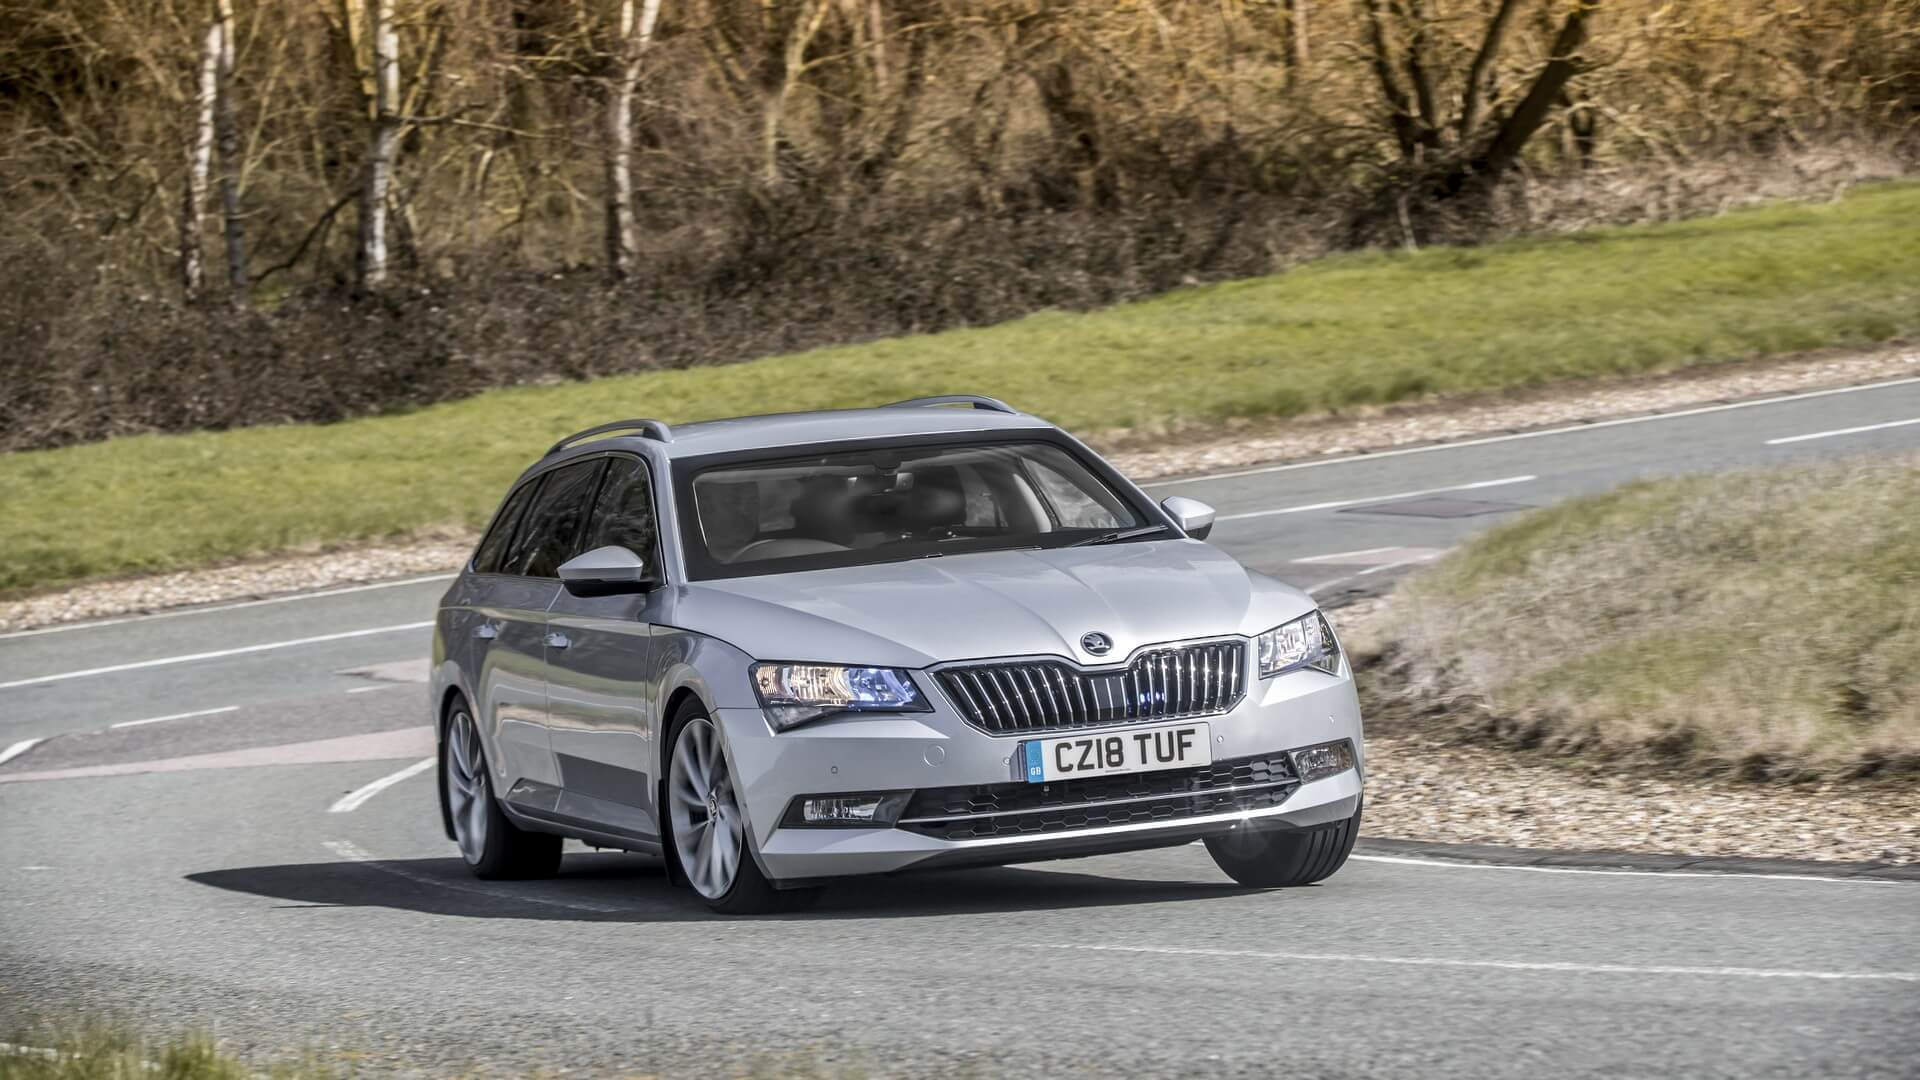 armored-skoda-superb-wagon.jpg